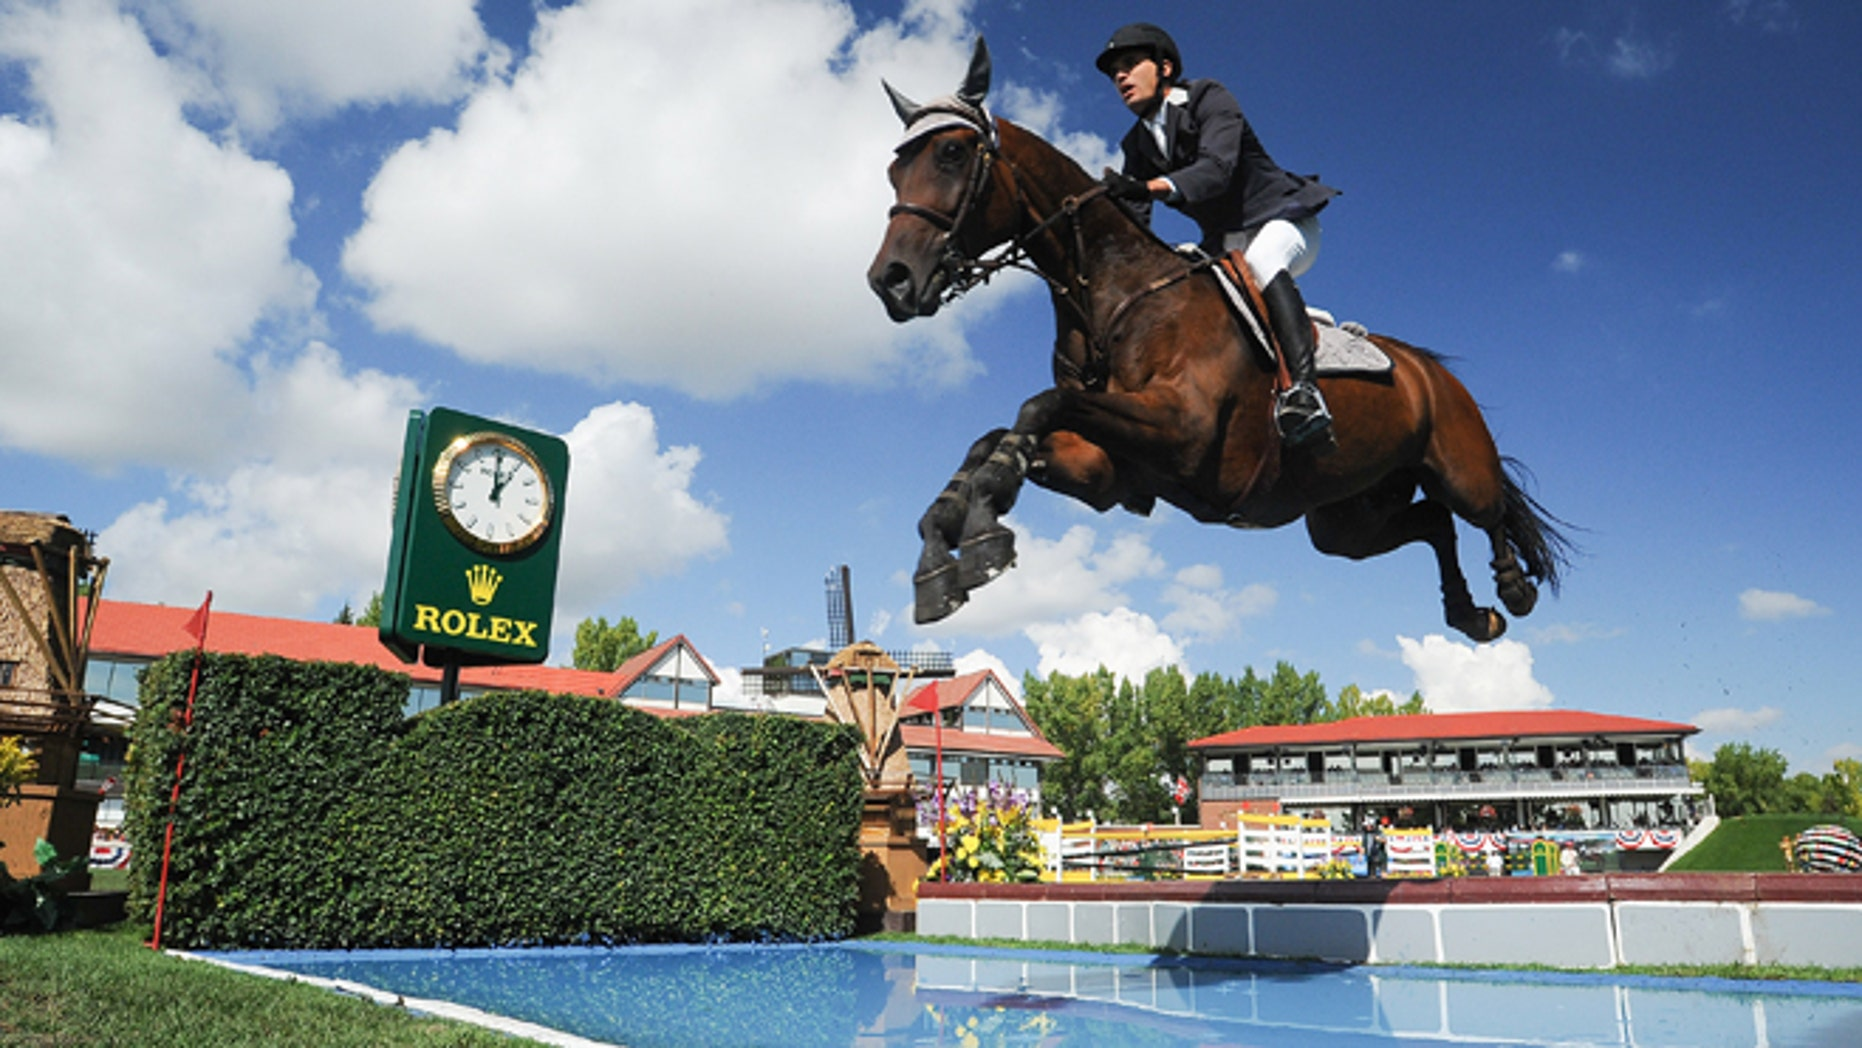 CALGARY, CANADA - SEPTEMBER 08: Andres Rodriguez of Venezuela riding Caballito competes in the individual jumping equestrian on the final day of the Masters tournament at Spruce Meadows on September 8, 2013 in Calgary, Alberta, Canada. Andres placed 18th with a time of 91.49 and 8 faults. (Photo by Derek Leung/Getty Images)